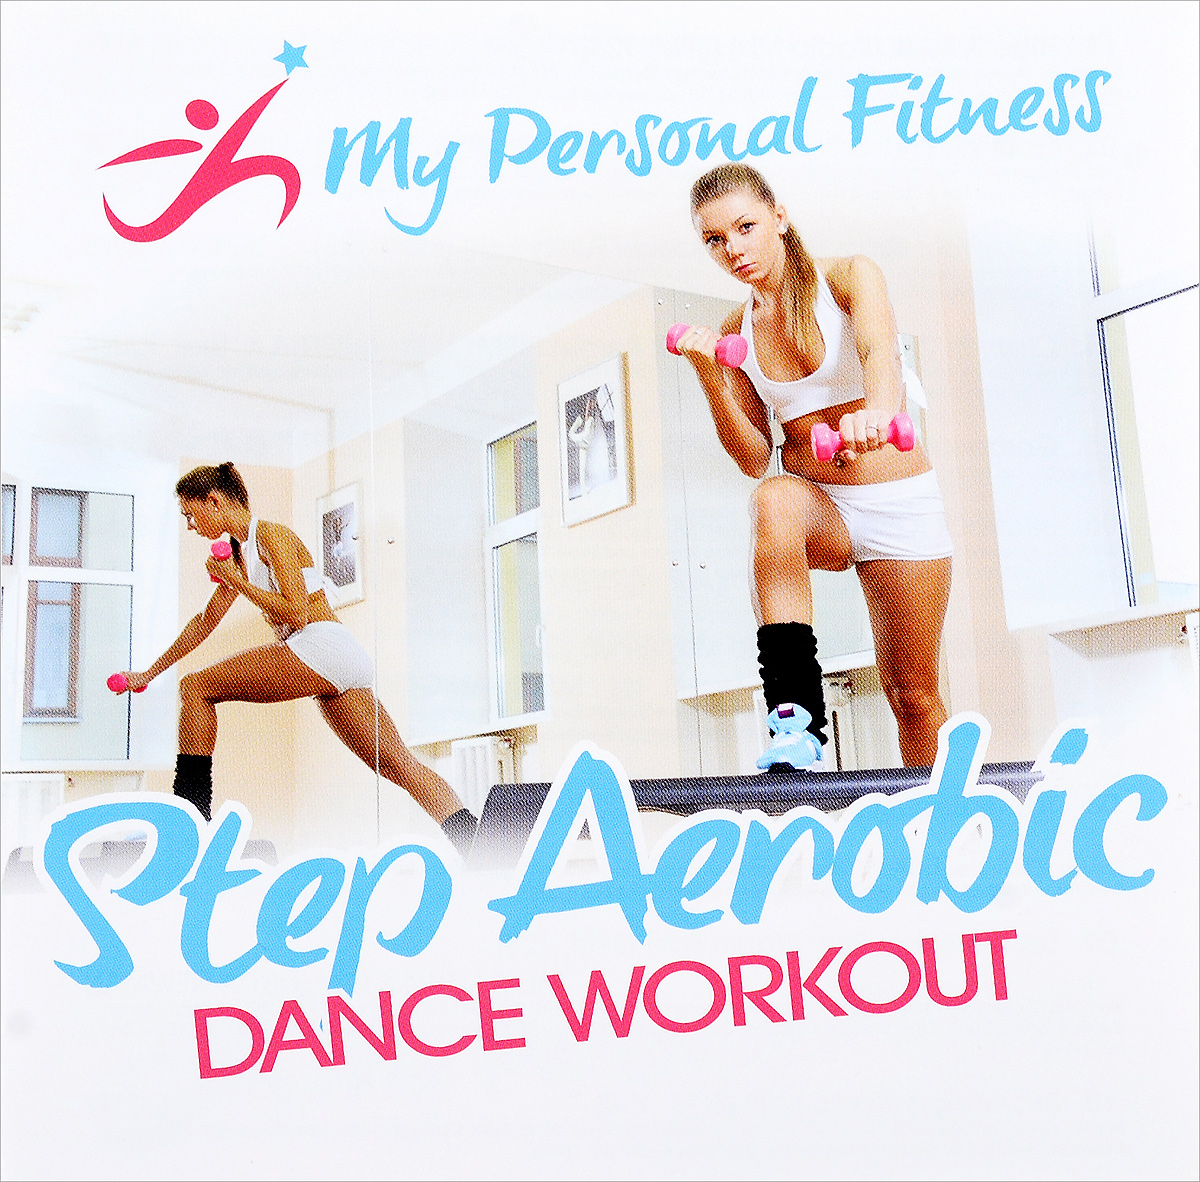 My Personal Fitness. Step Aerobic. Dance Workout